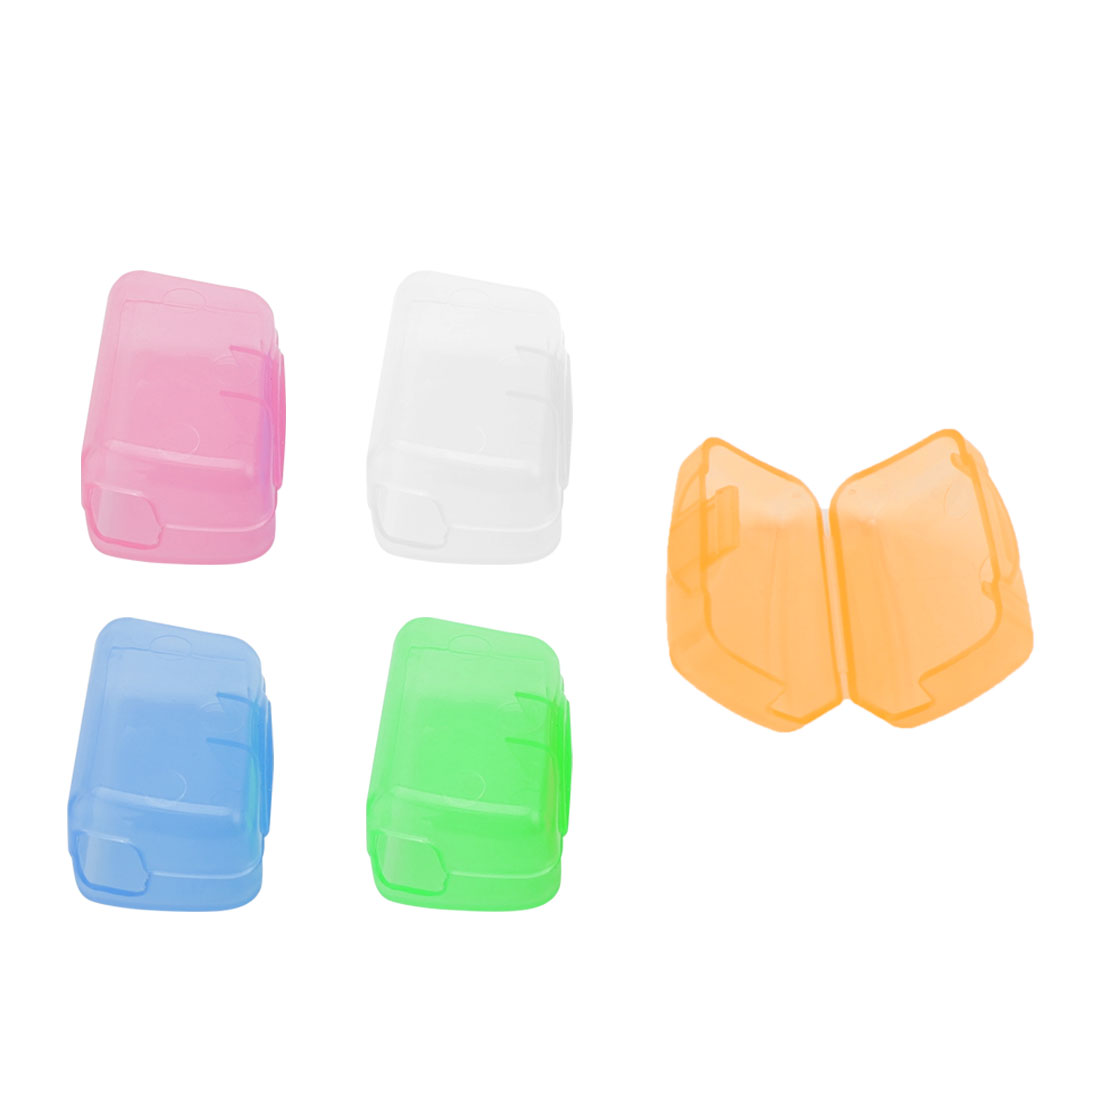 Portable Travel Toothbrush Head Cover Case Protective Caps Brush Cleaner Protector 5pcs